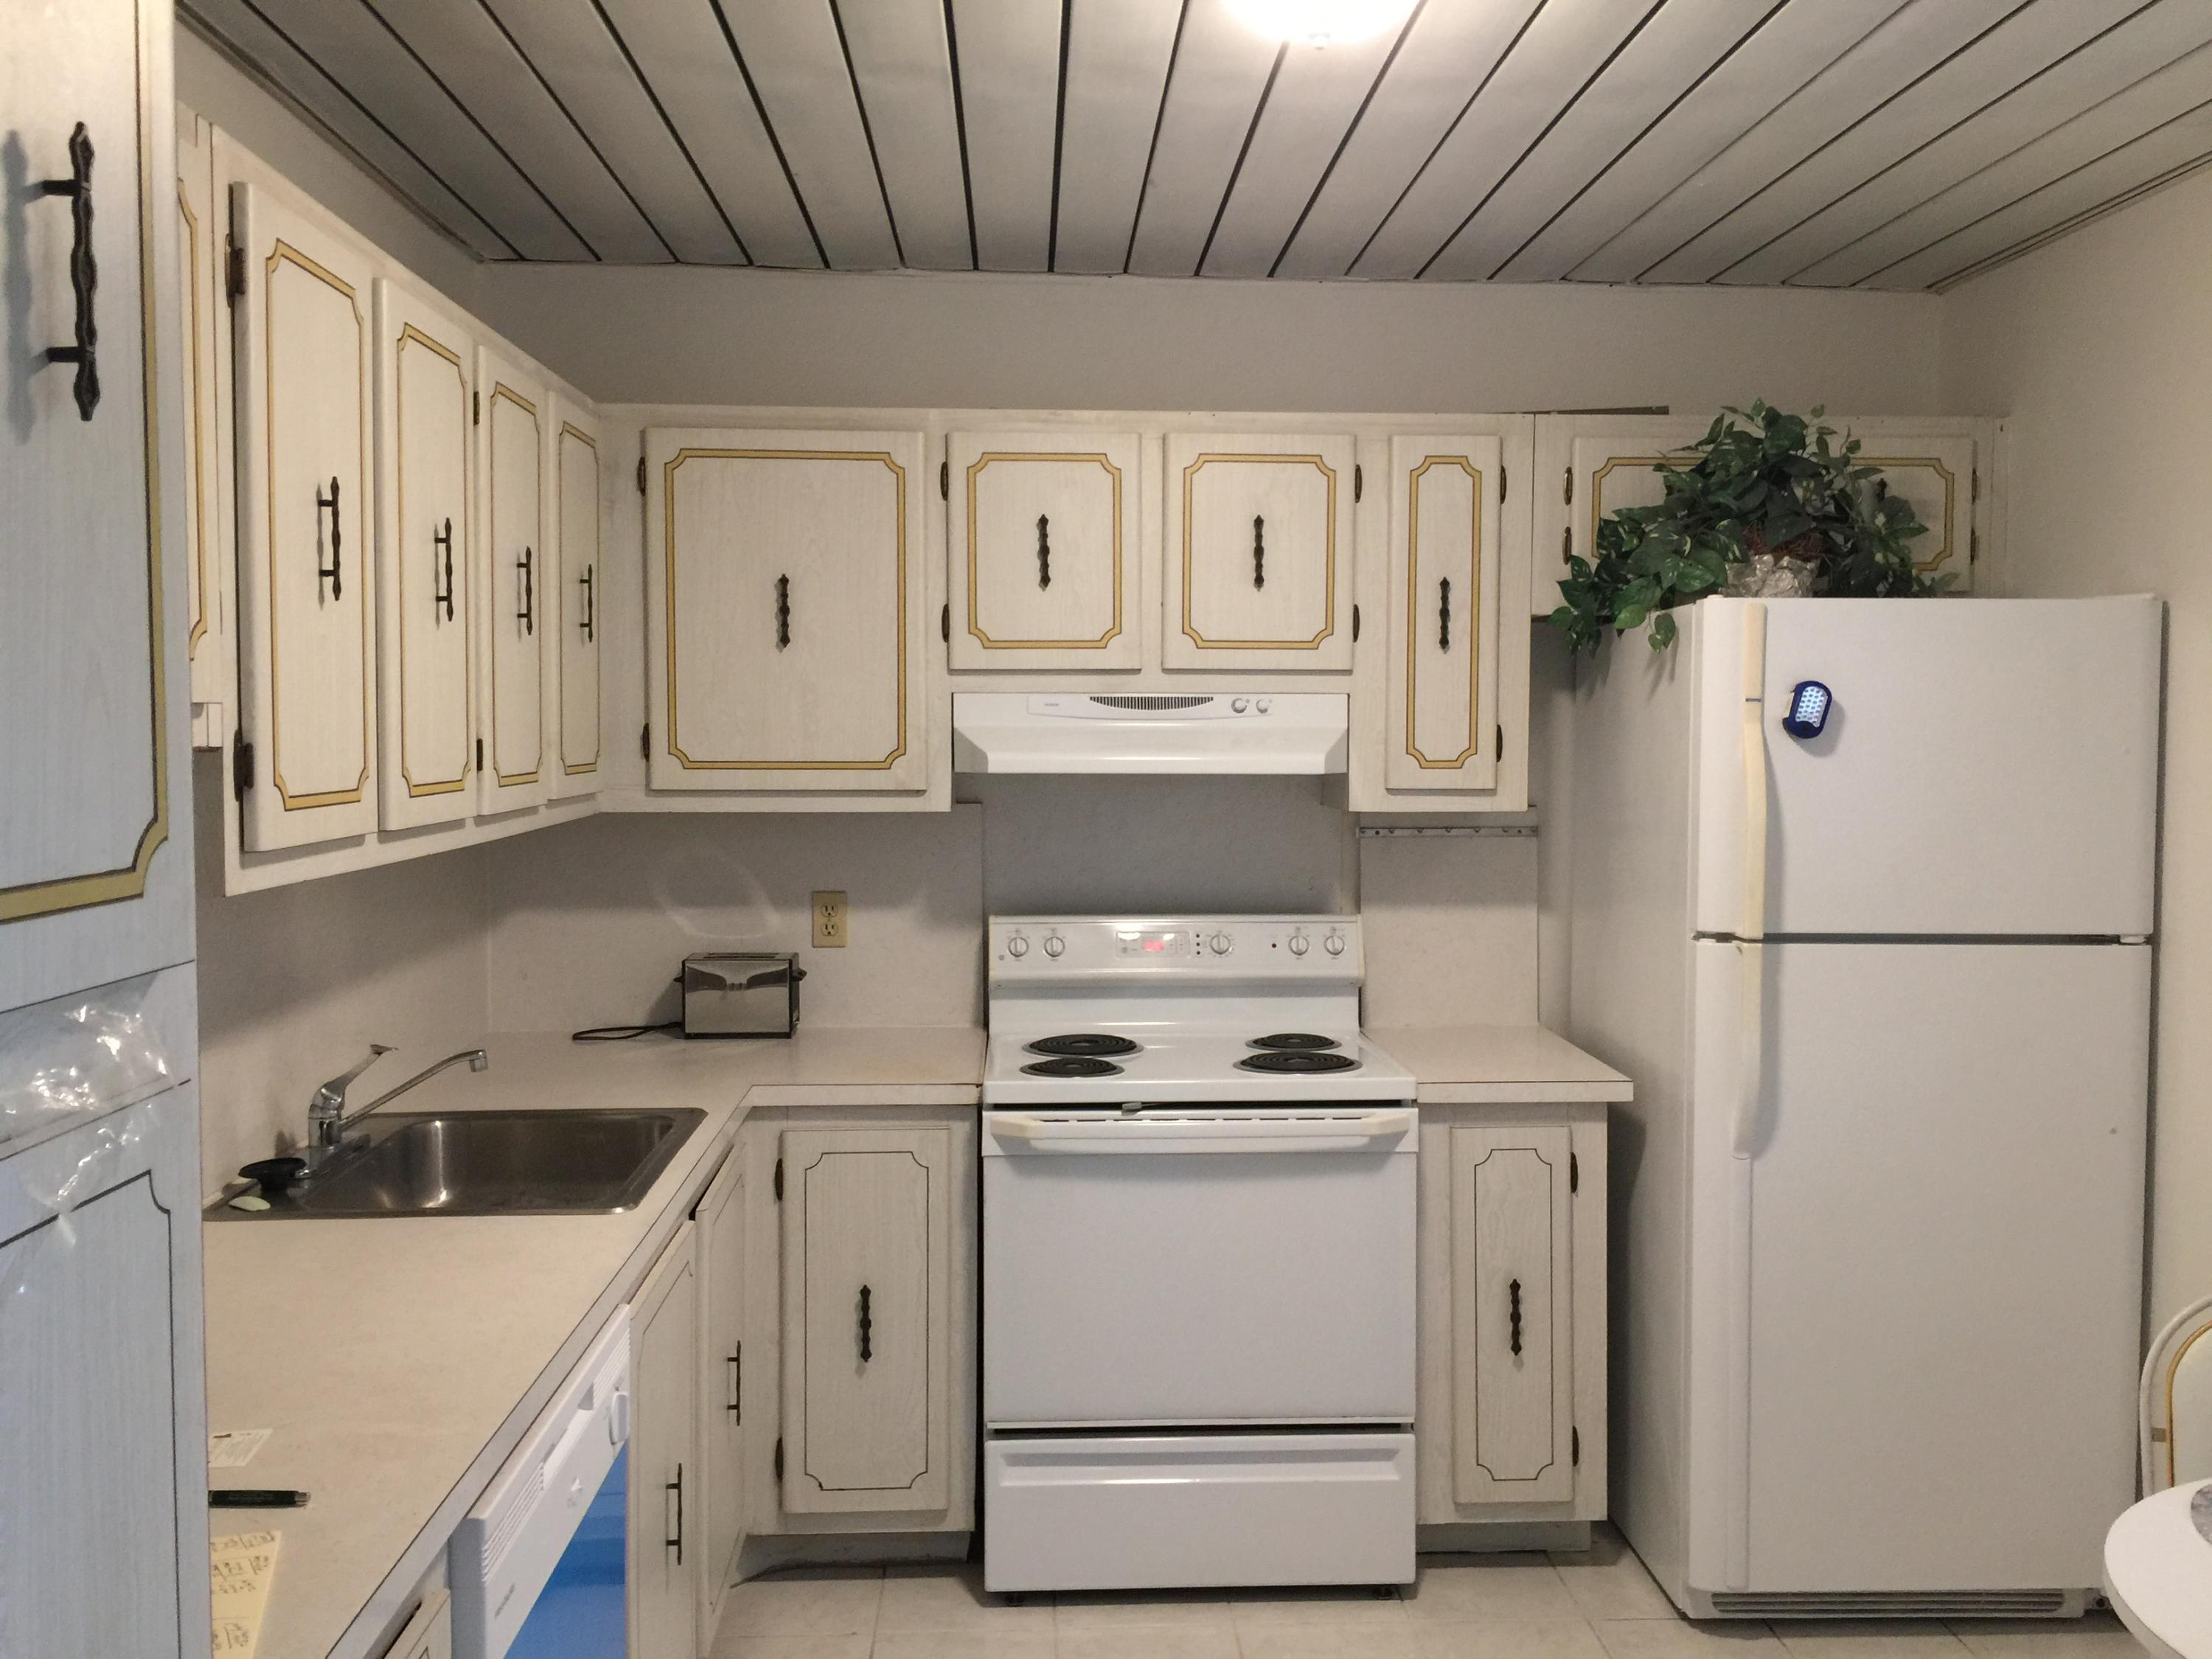 700 Horizons Boynton Beach 33435 - photo